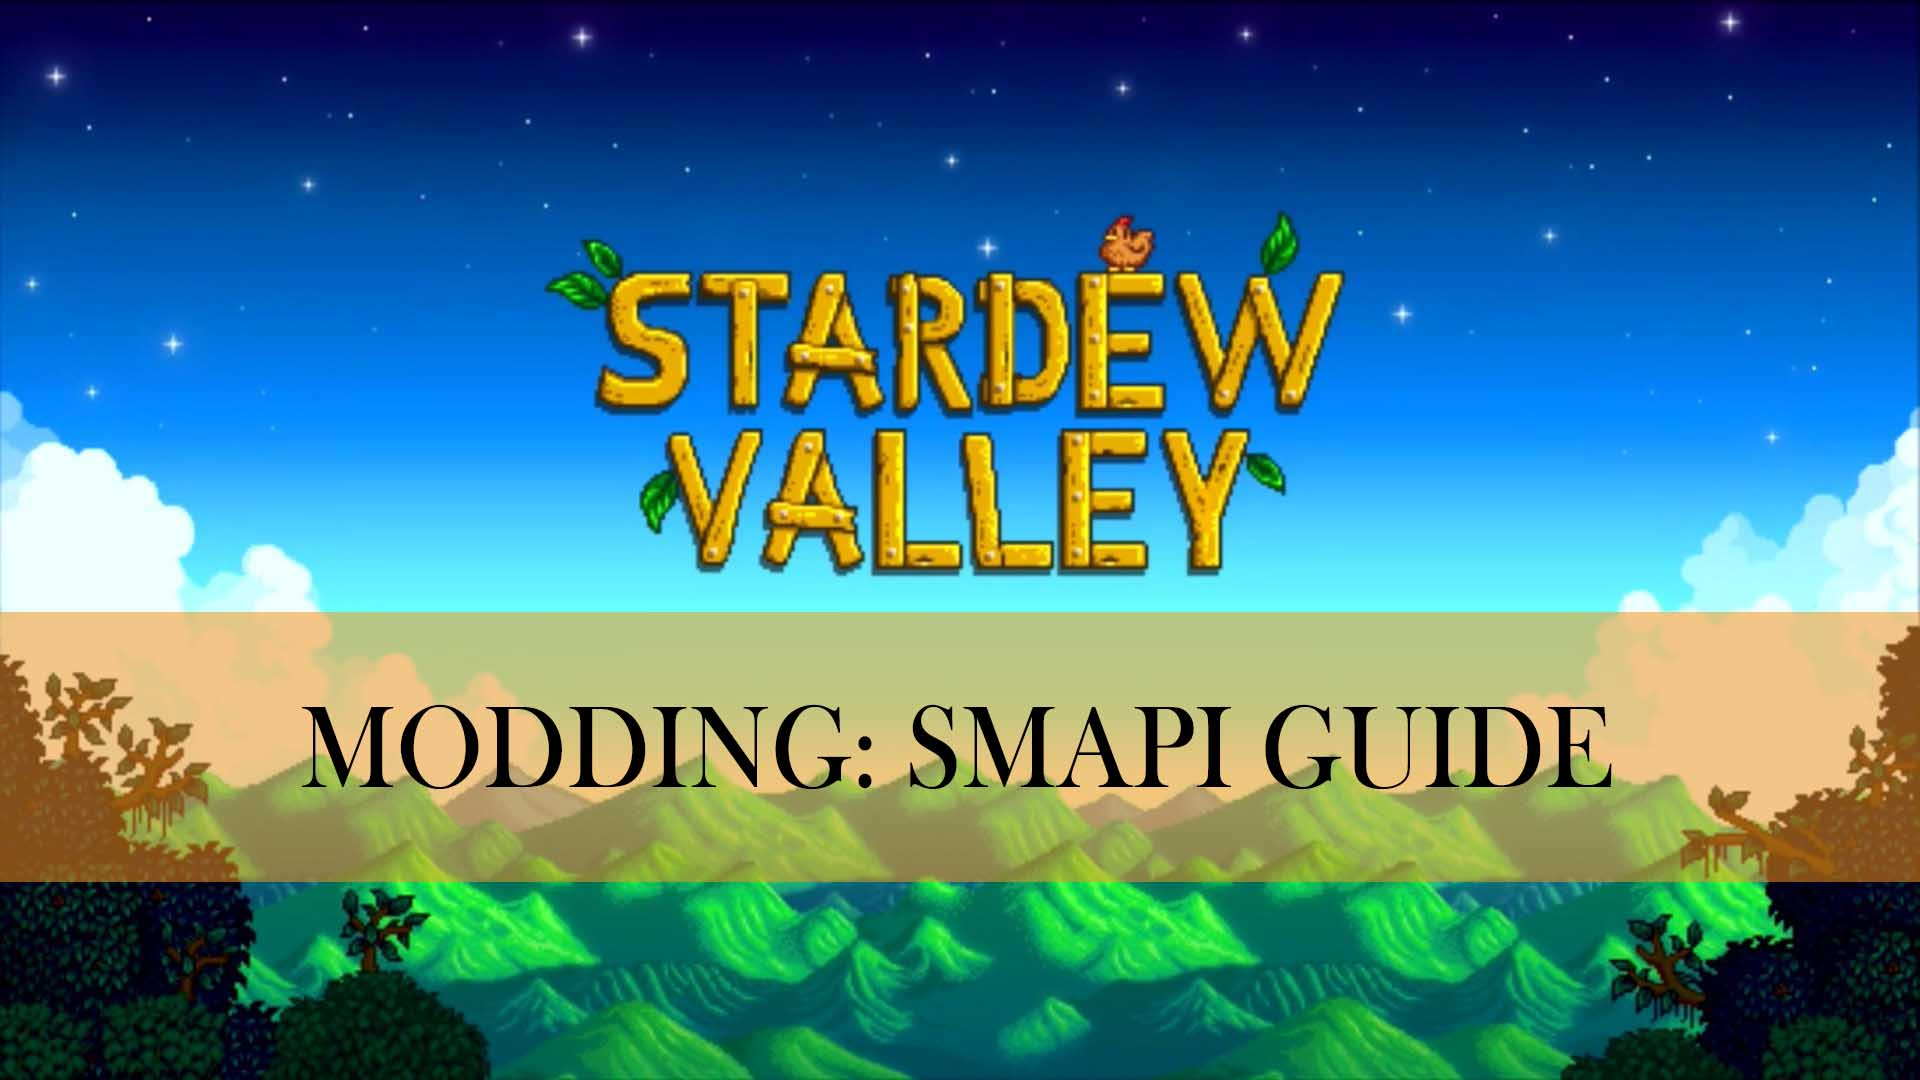 stardew valley modding smapi guide